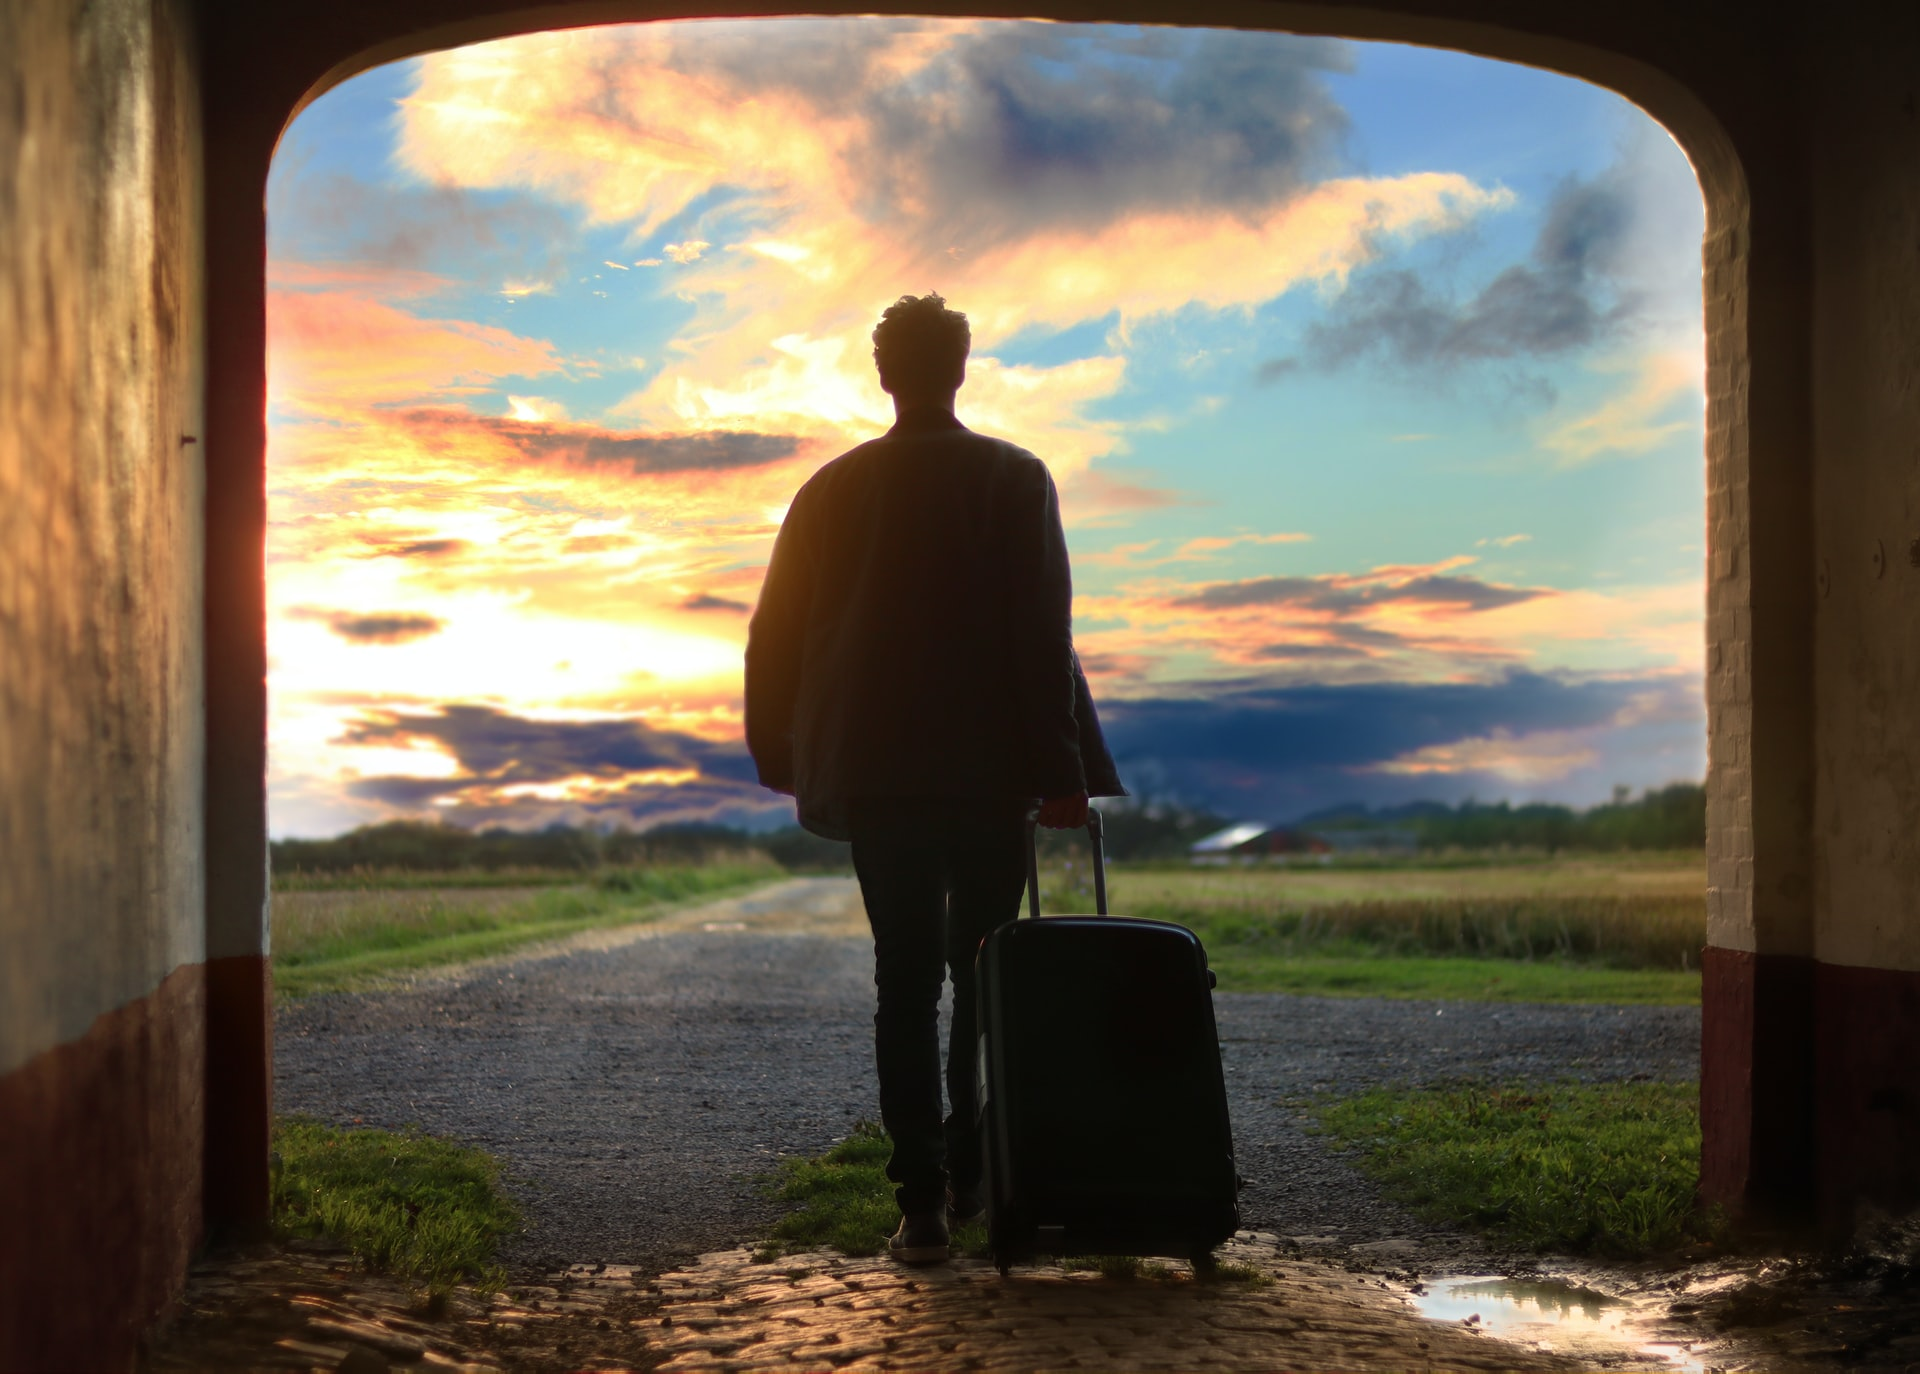 Leaving for a hero's journey with suitcase in tow